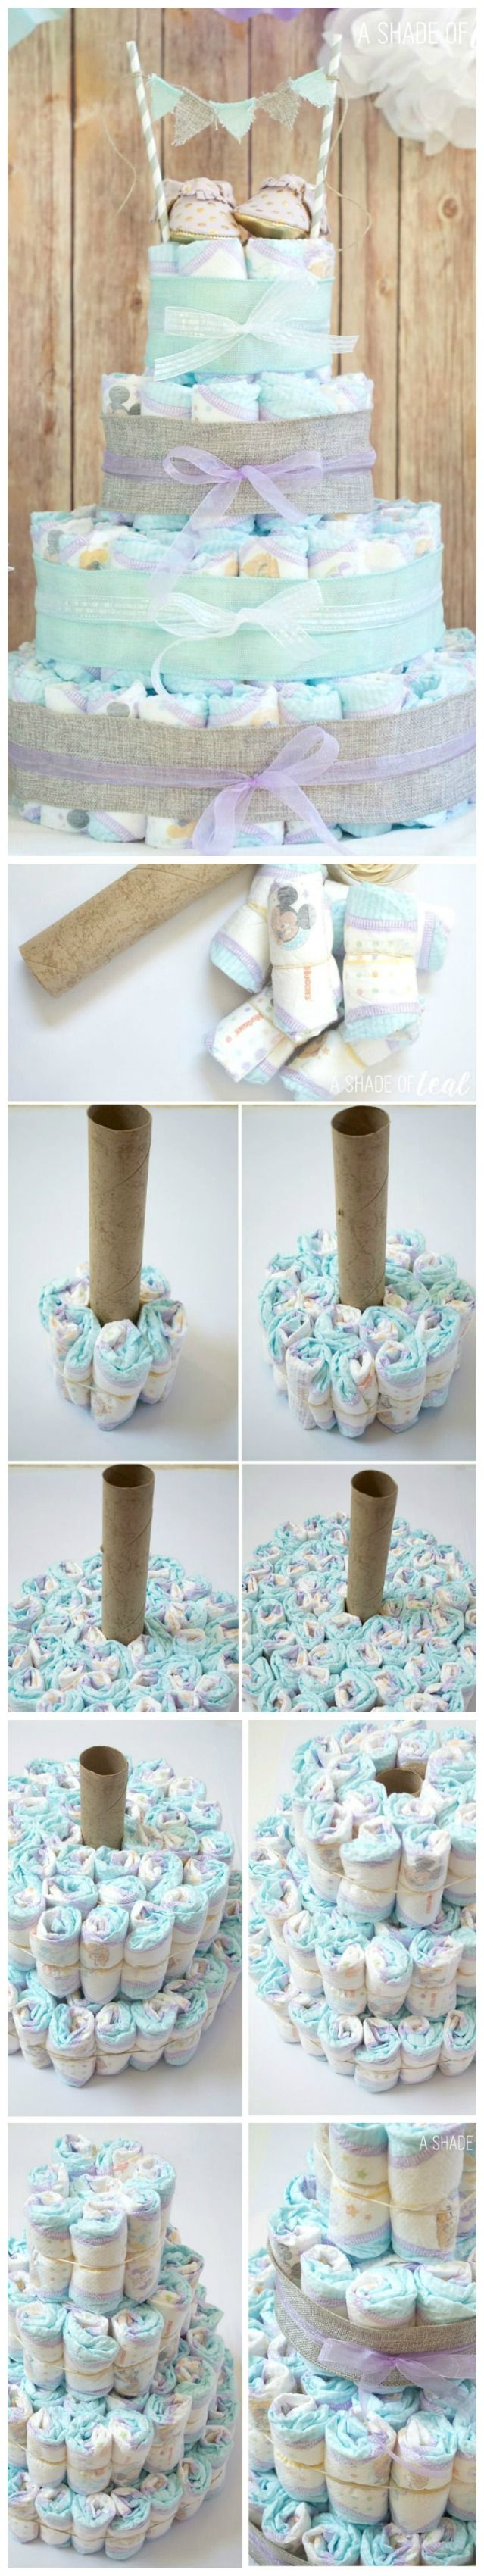 How To Make a Rustic Glam Diaper Cake ~ Making diaper cakes is so much fun, especially when you can make it unique to fit the new mom's style.